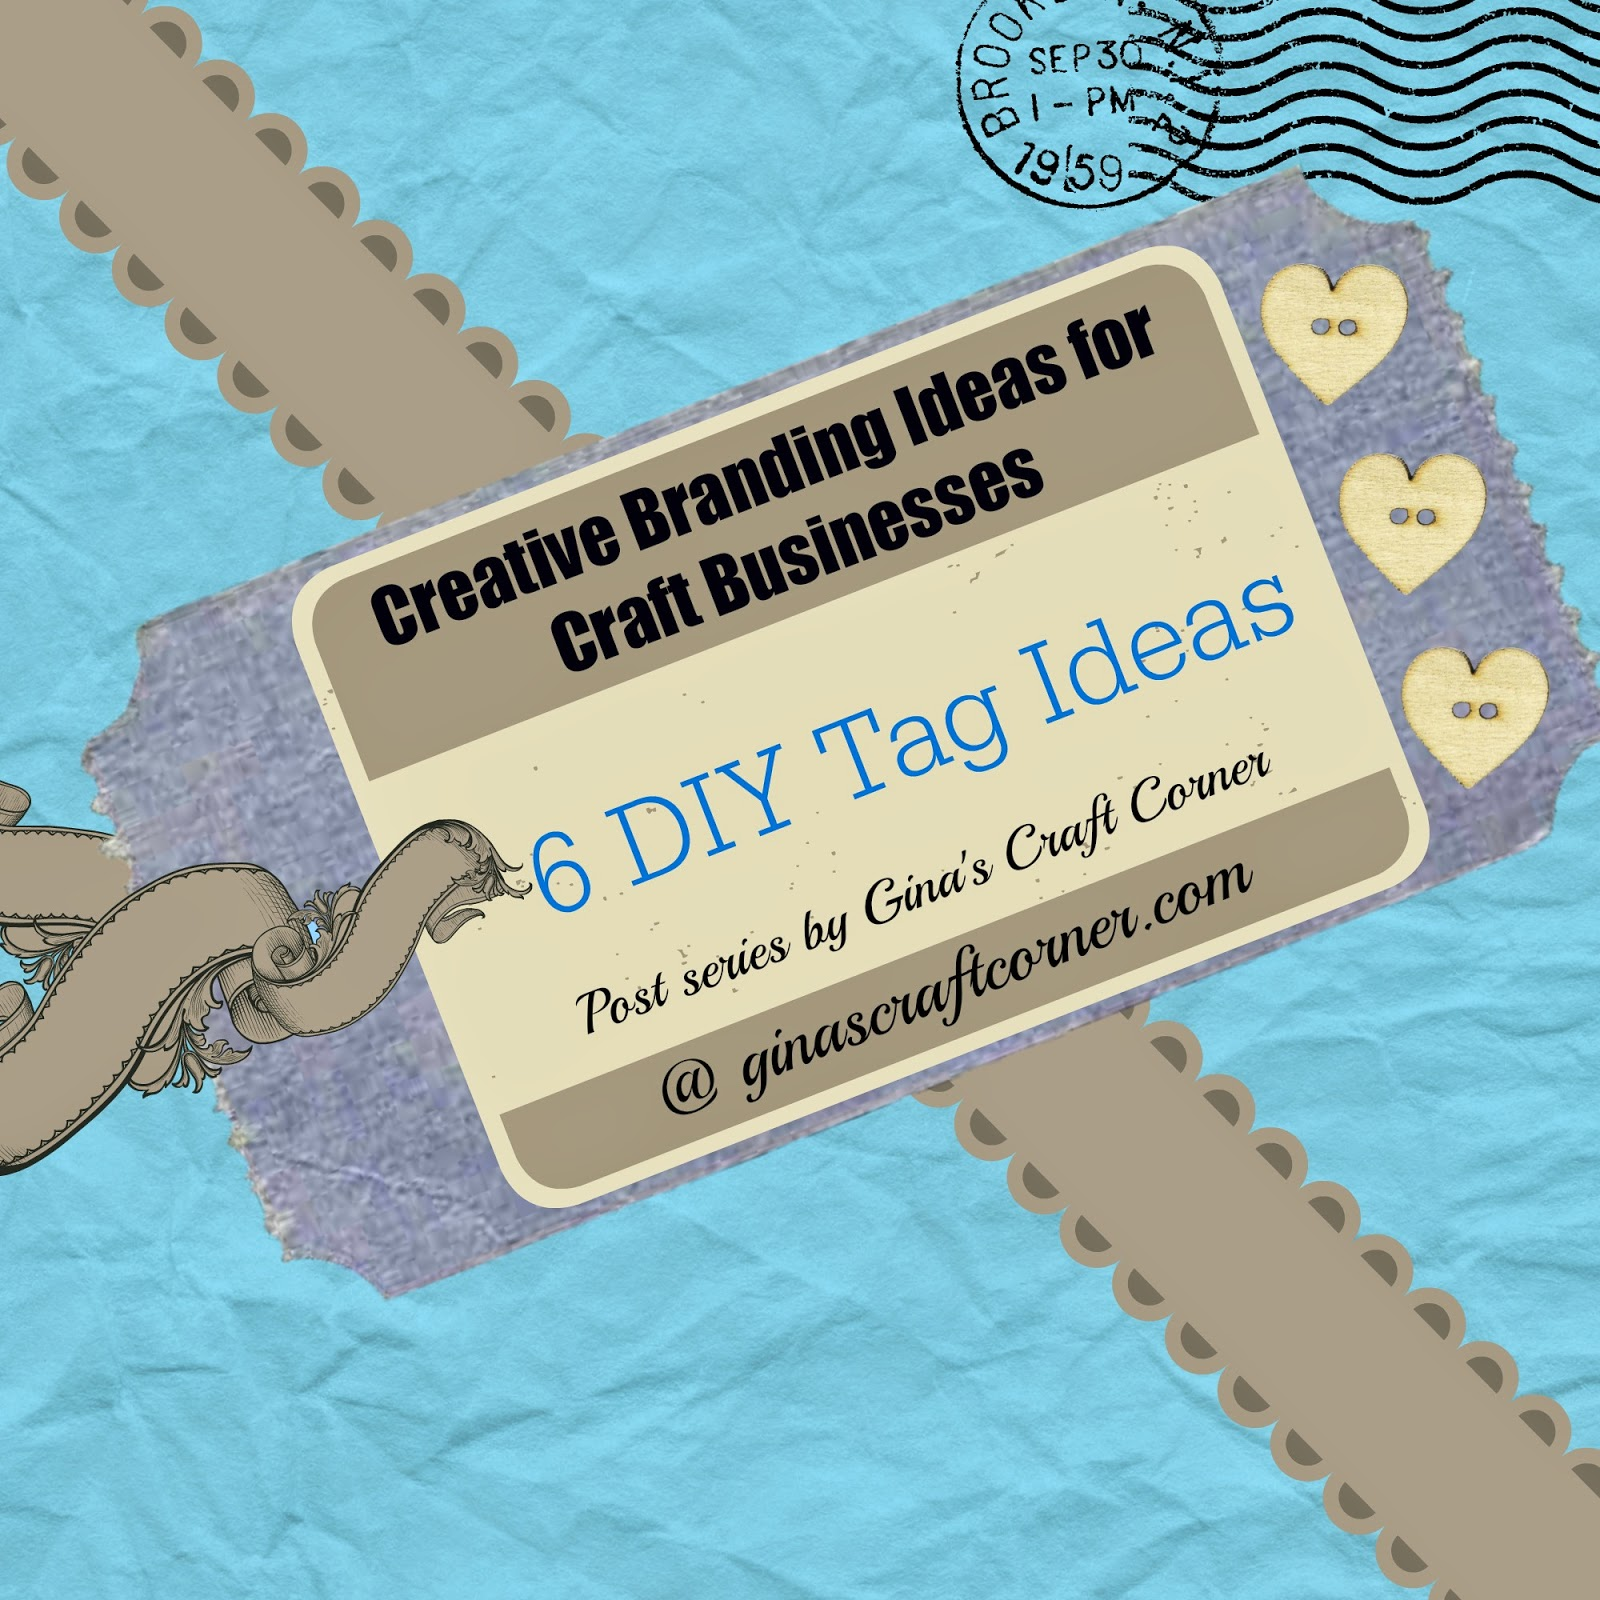 Gina S Craft Corner Creative Branding Ideas For Your Business Diy Tags